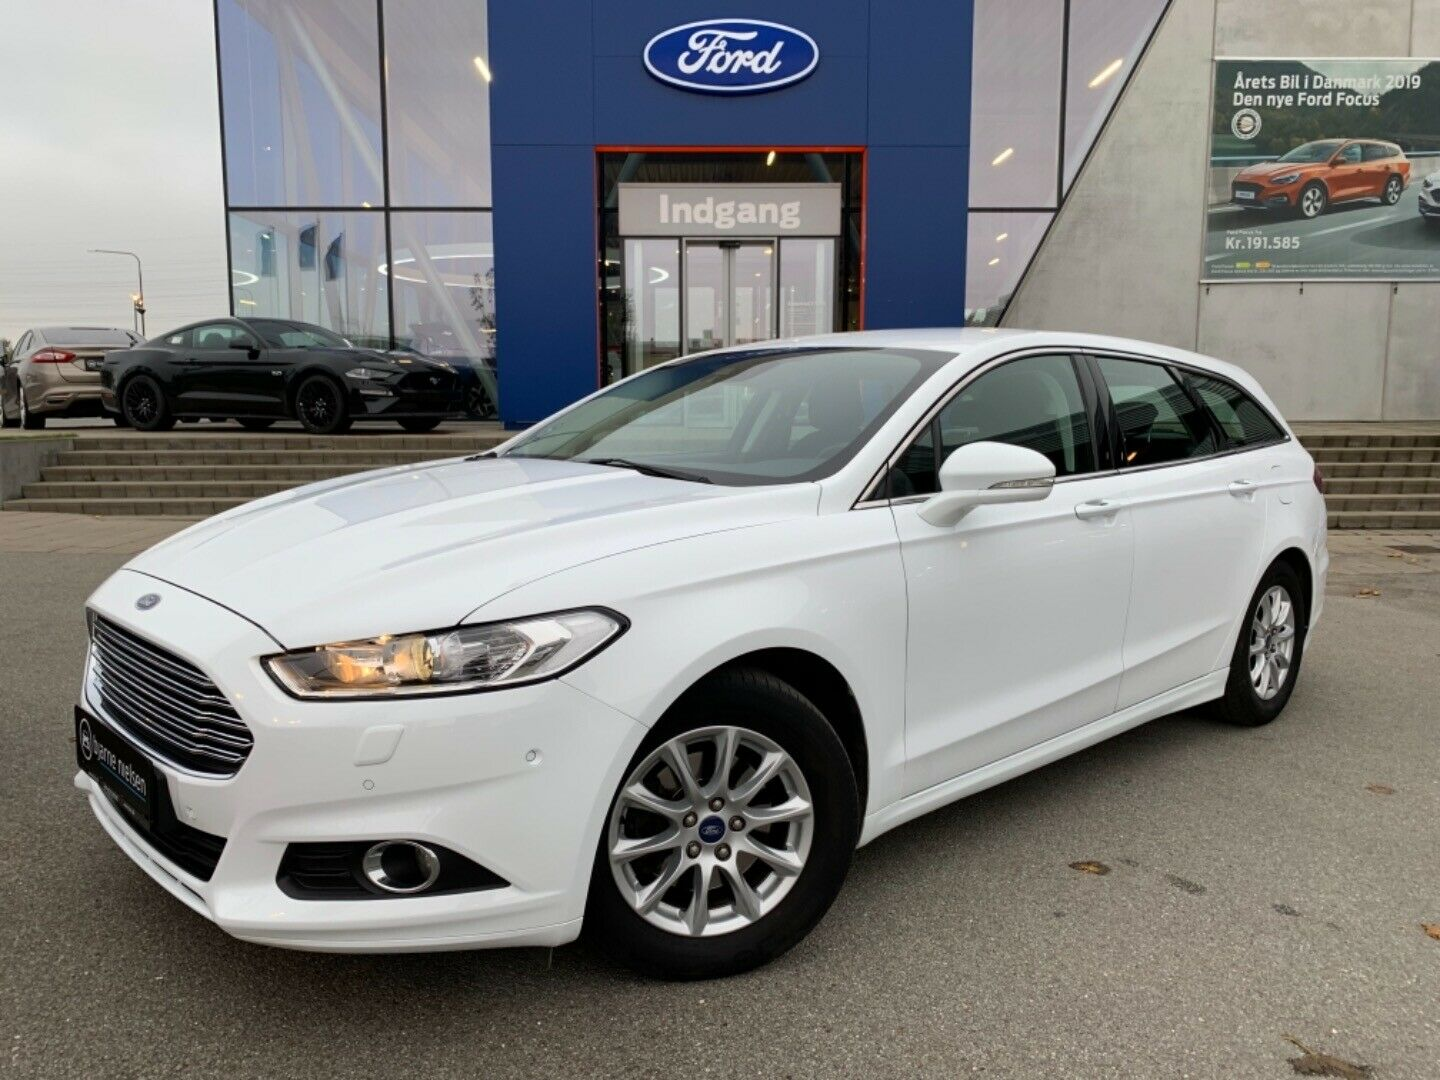 Ford Mondeo 1,6 TDCi 115 Trend stc.